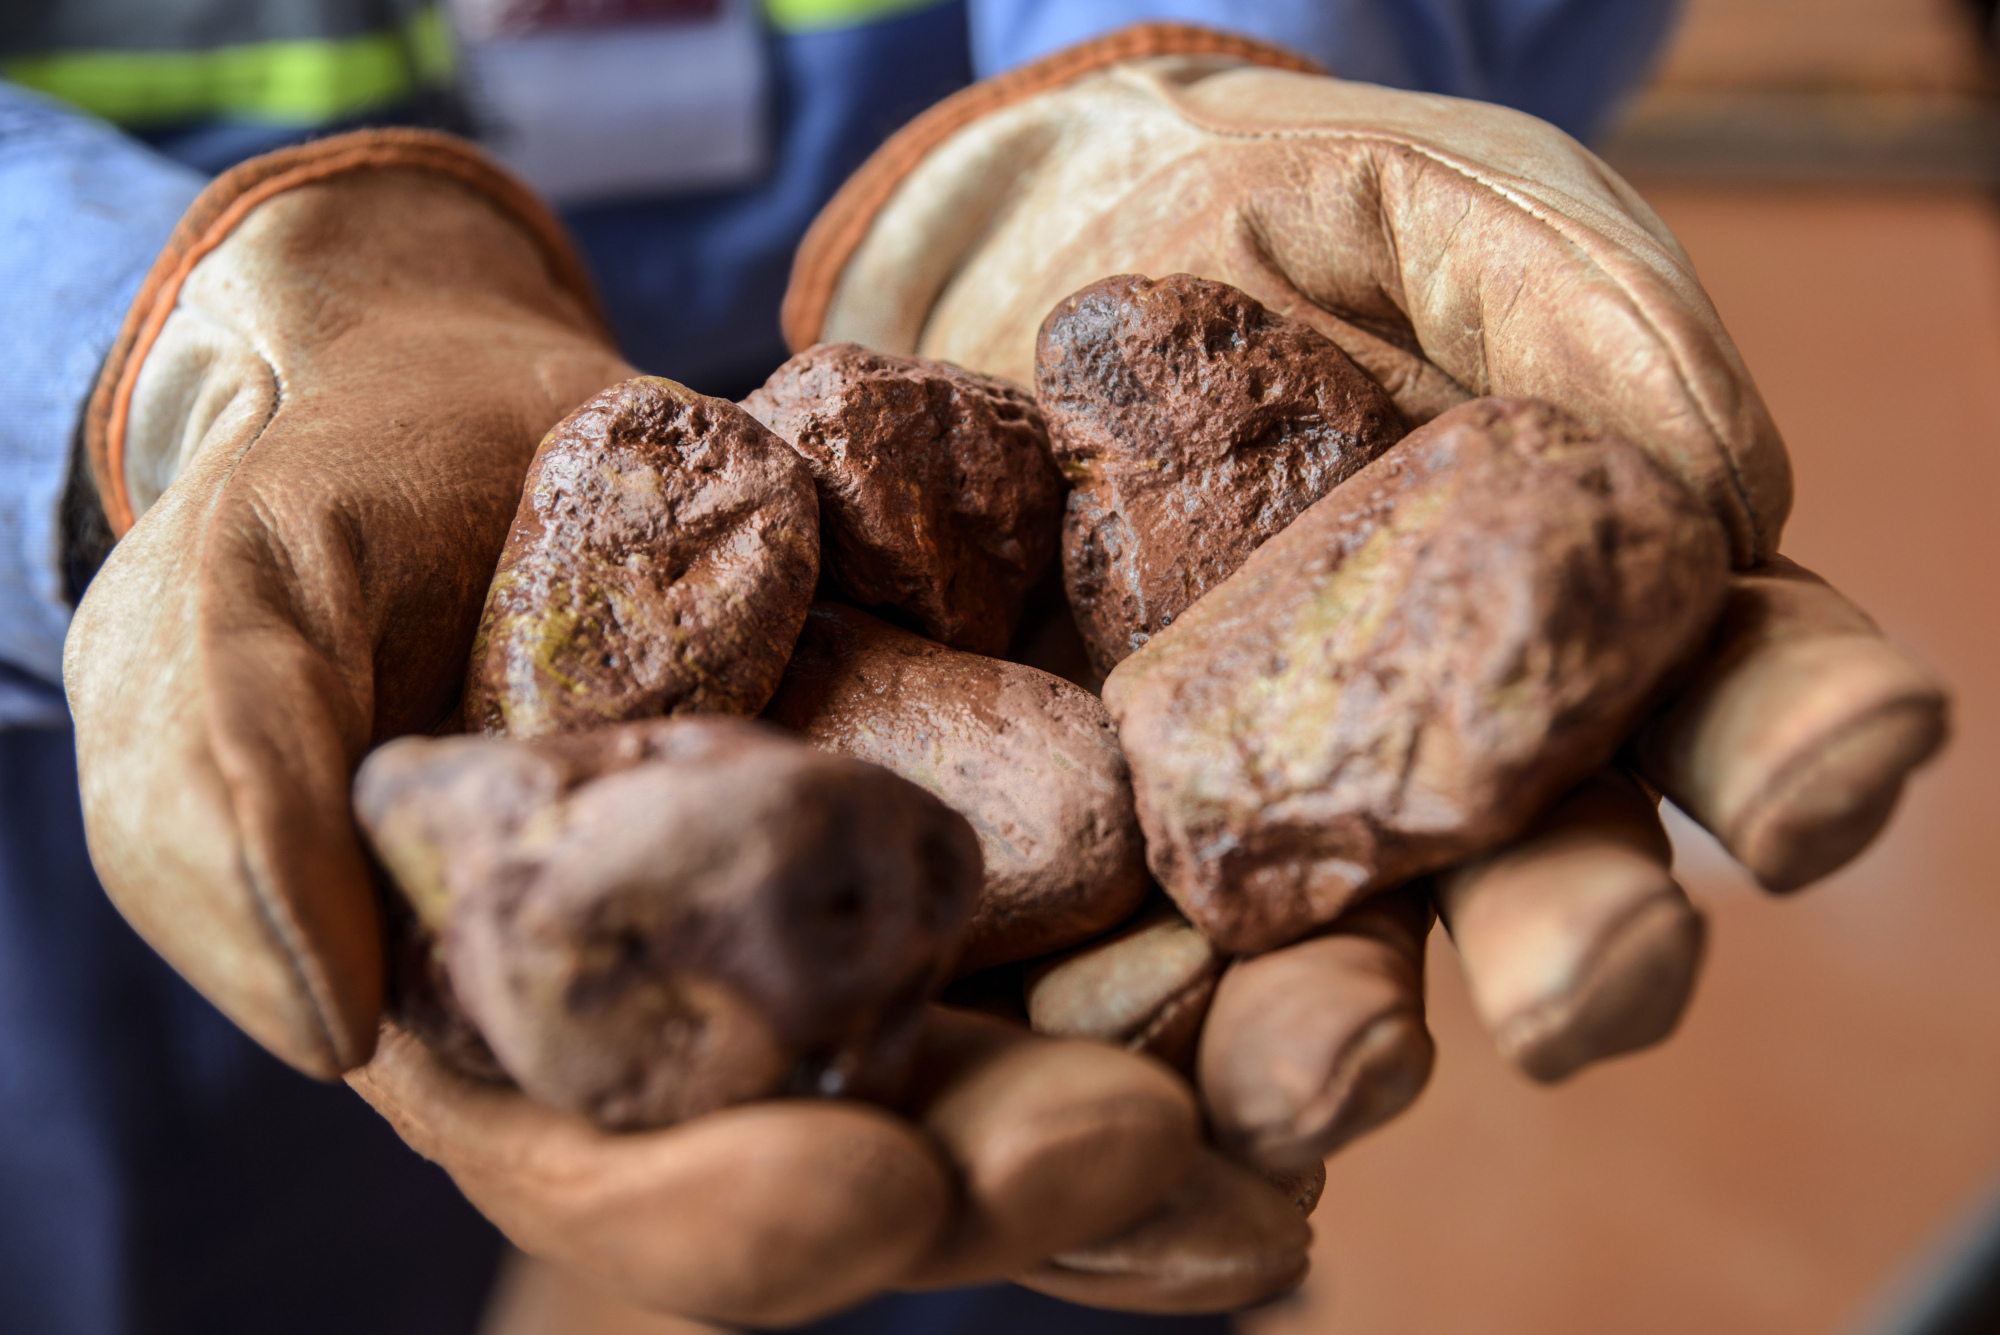 A worker displays cleaned bauxite stones for a photograph at the Paragominas bauxite mine, co-owned by Norsk Hydro and Vale SA, in Paragominas, Brazil, on Wednesday, April 13, 2016. Bauxite is extracted from the clay soil, crushed and transported via pipeline to Barcarena for refining and shipment to aluminium producers in Brazil and internationally. Photographer: Paulo Fridman/Bloomberg